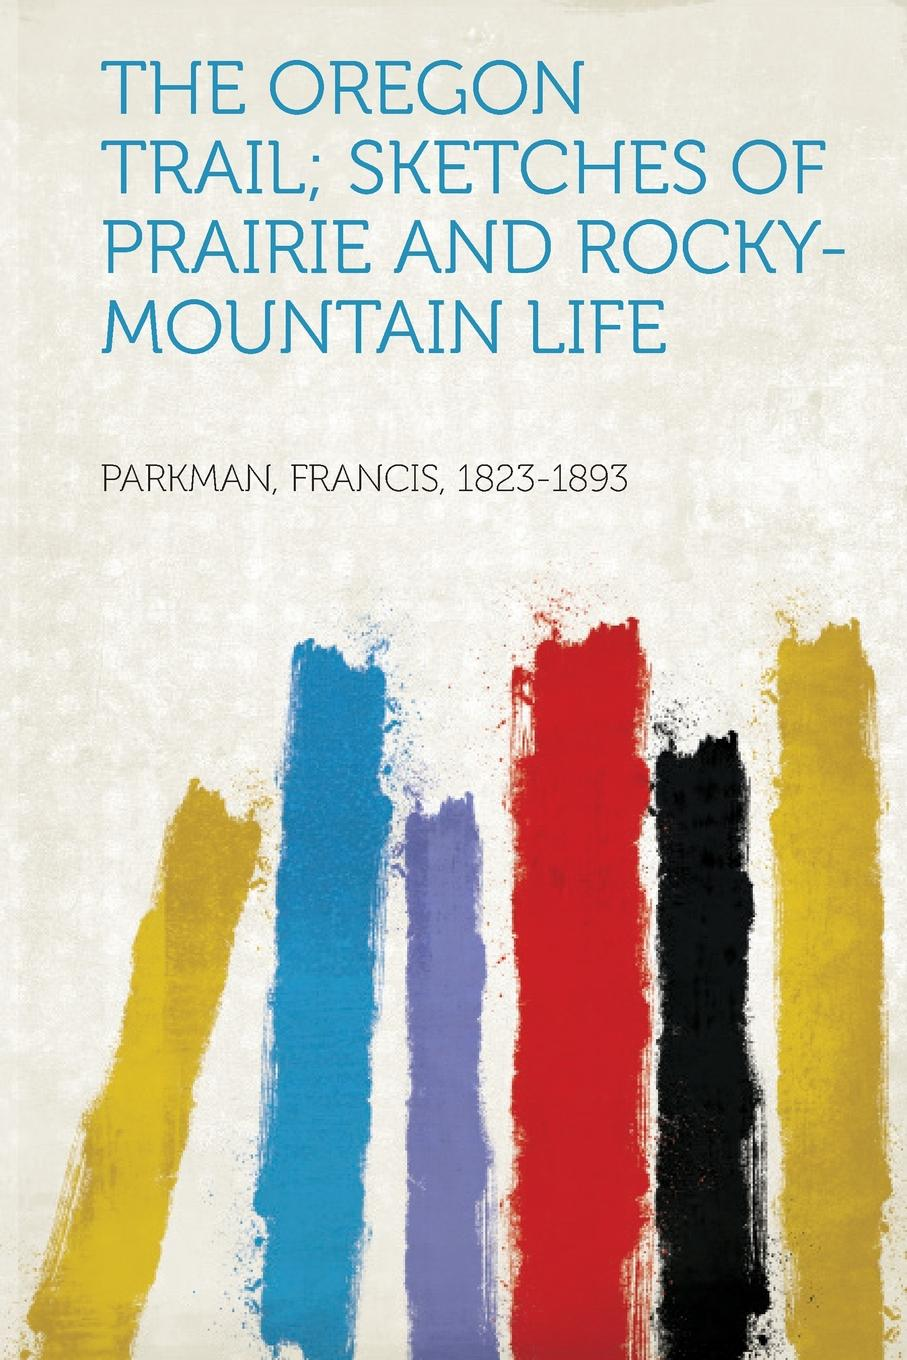 Parkman Francis 1823-1893 The Oregon Trail; Sketches of Prairie and Rocky-Mountain Life francis parkman the oregon trail sketches of prairie and rocky mountain life